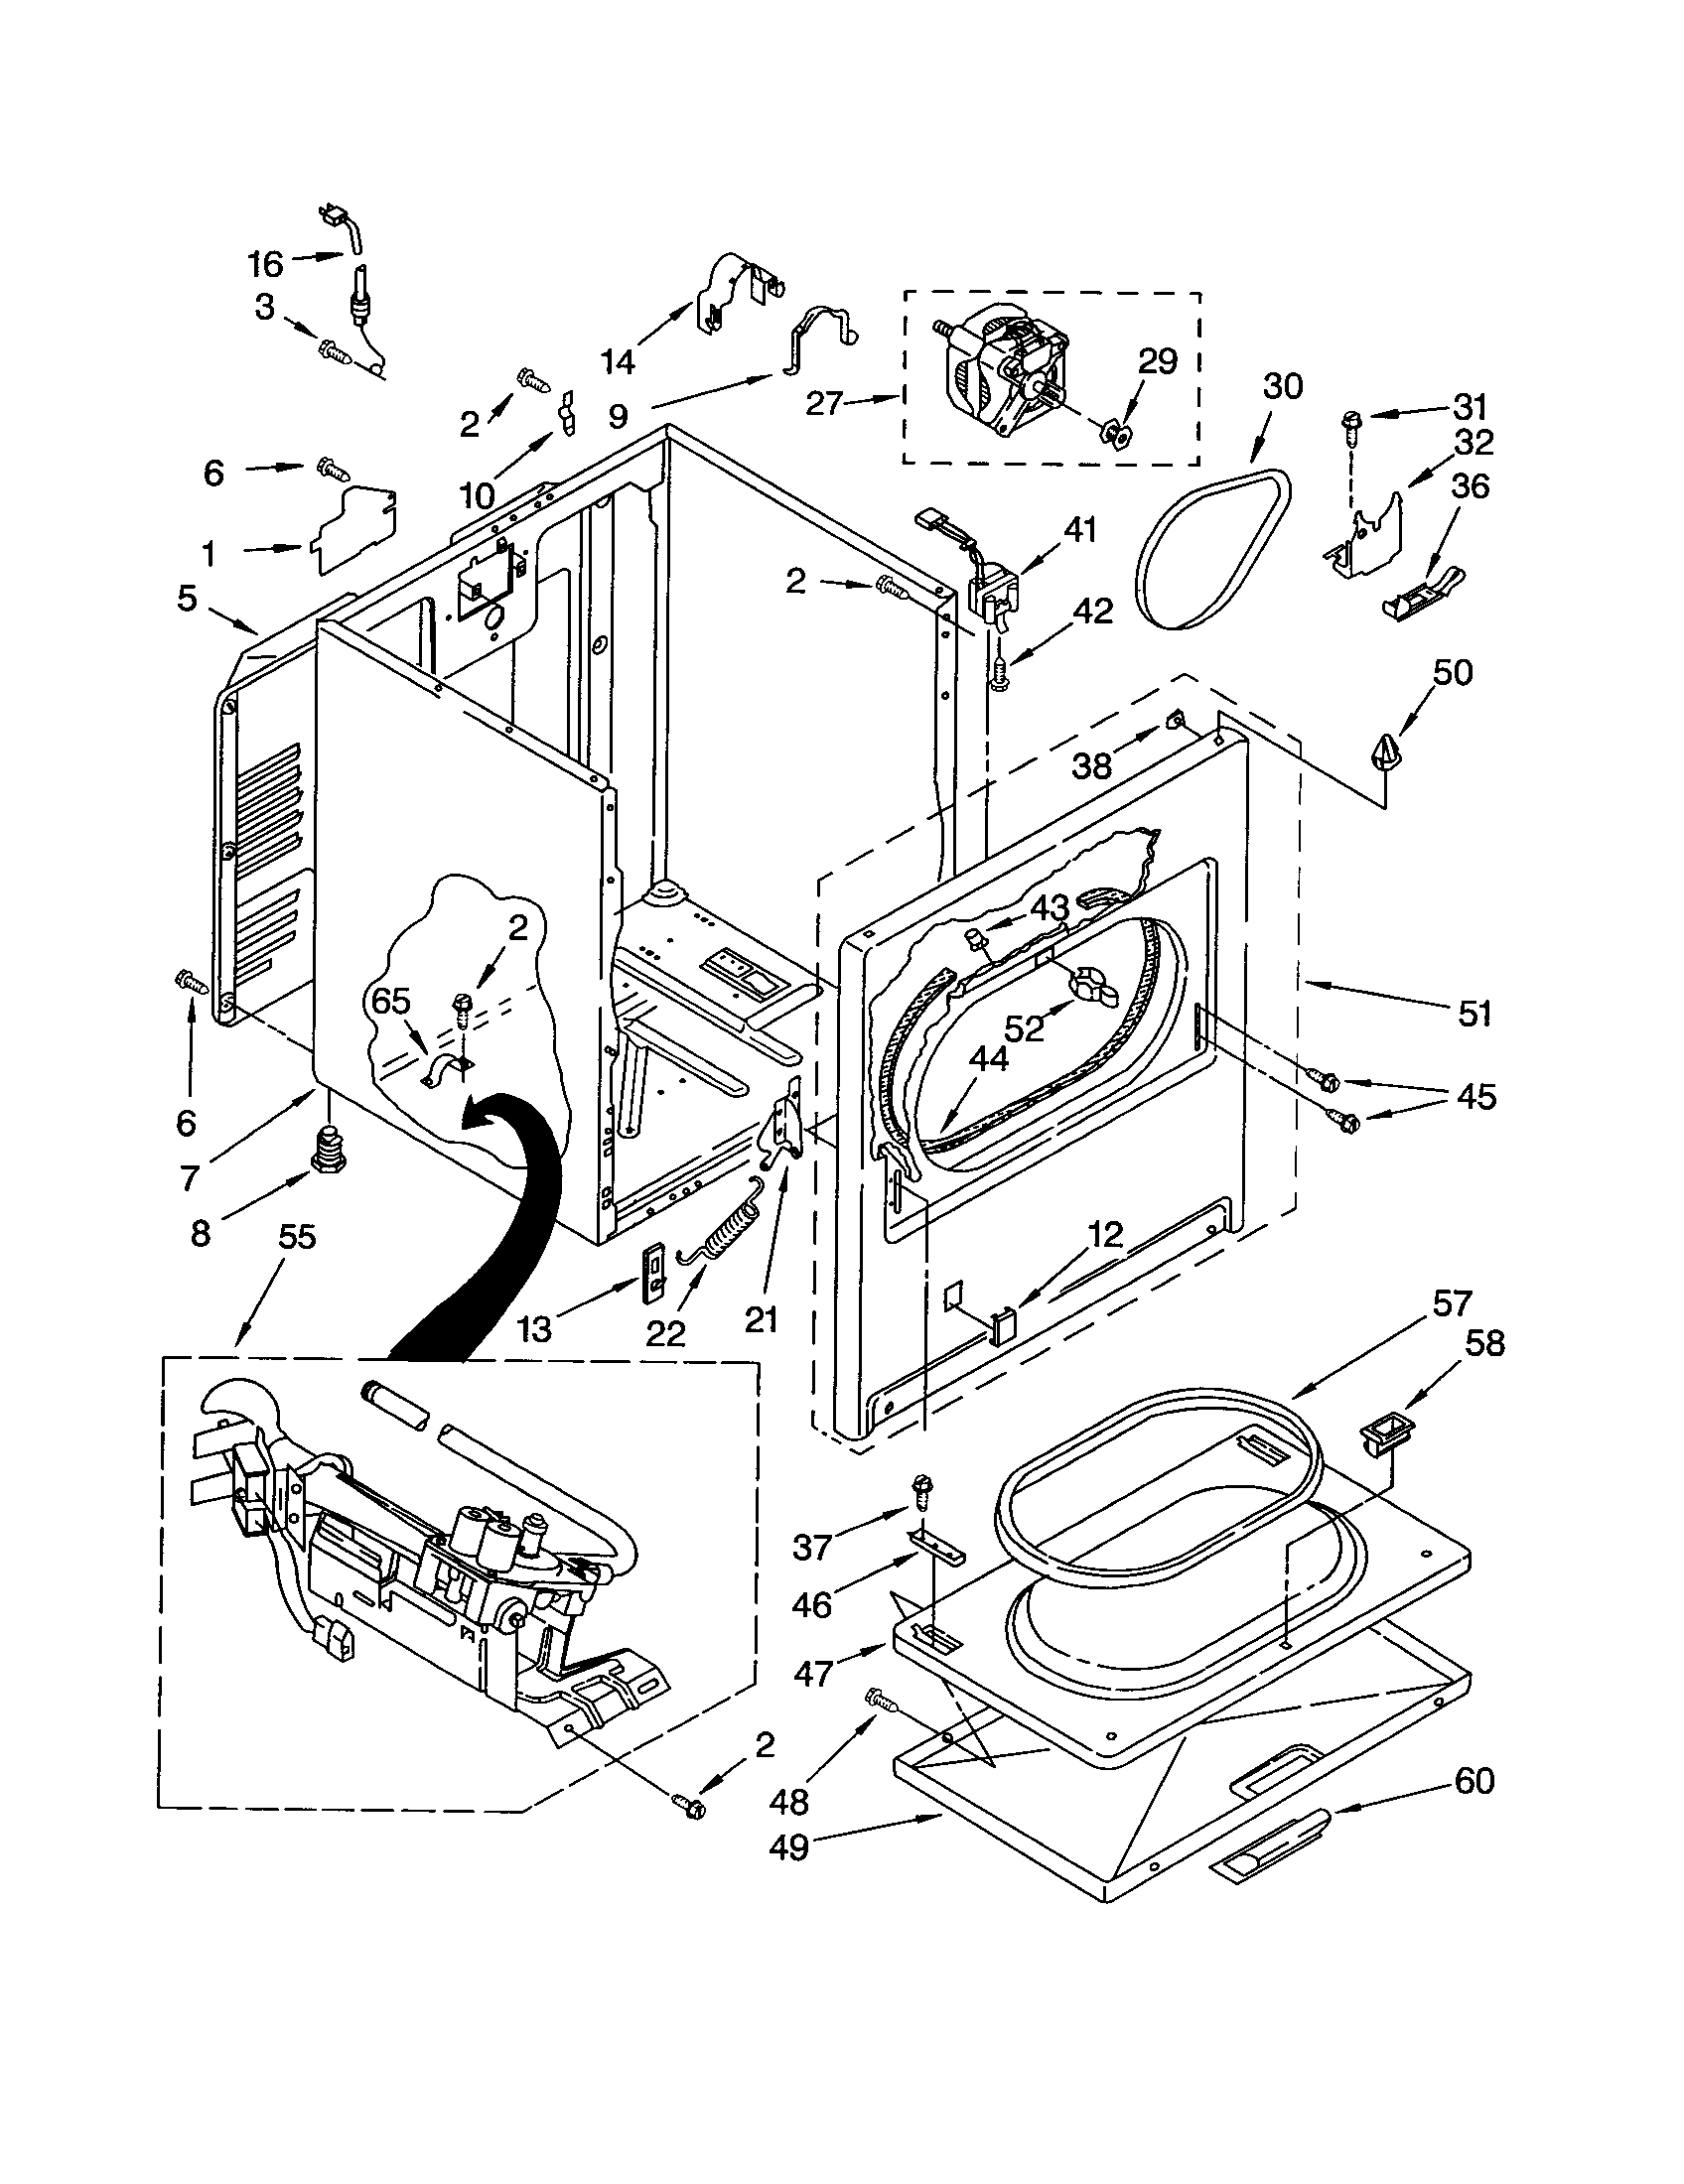 Kenmore 90 Series Dryer Parts Diagram Periodic